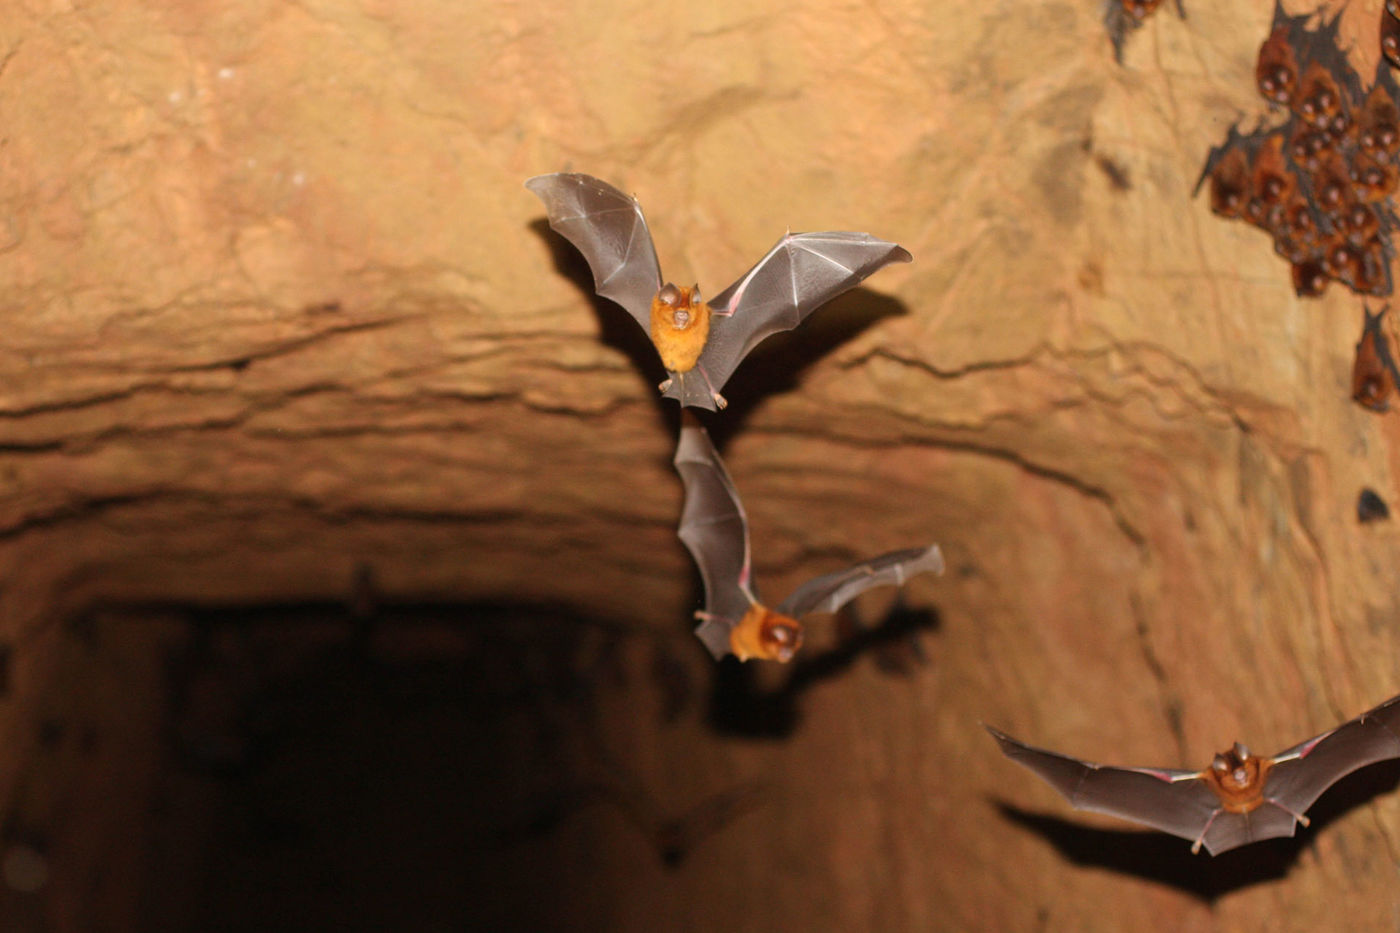 Bats flying out of a cave.